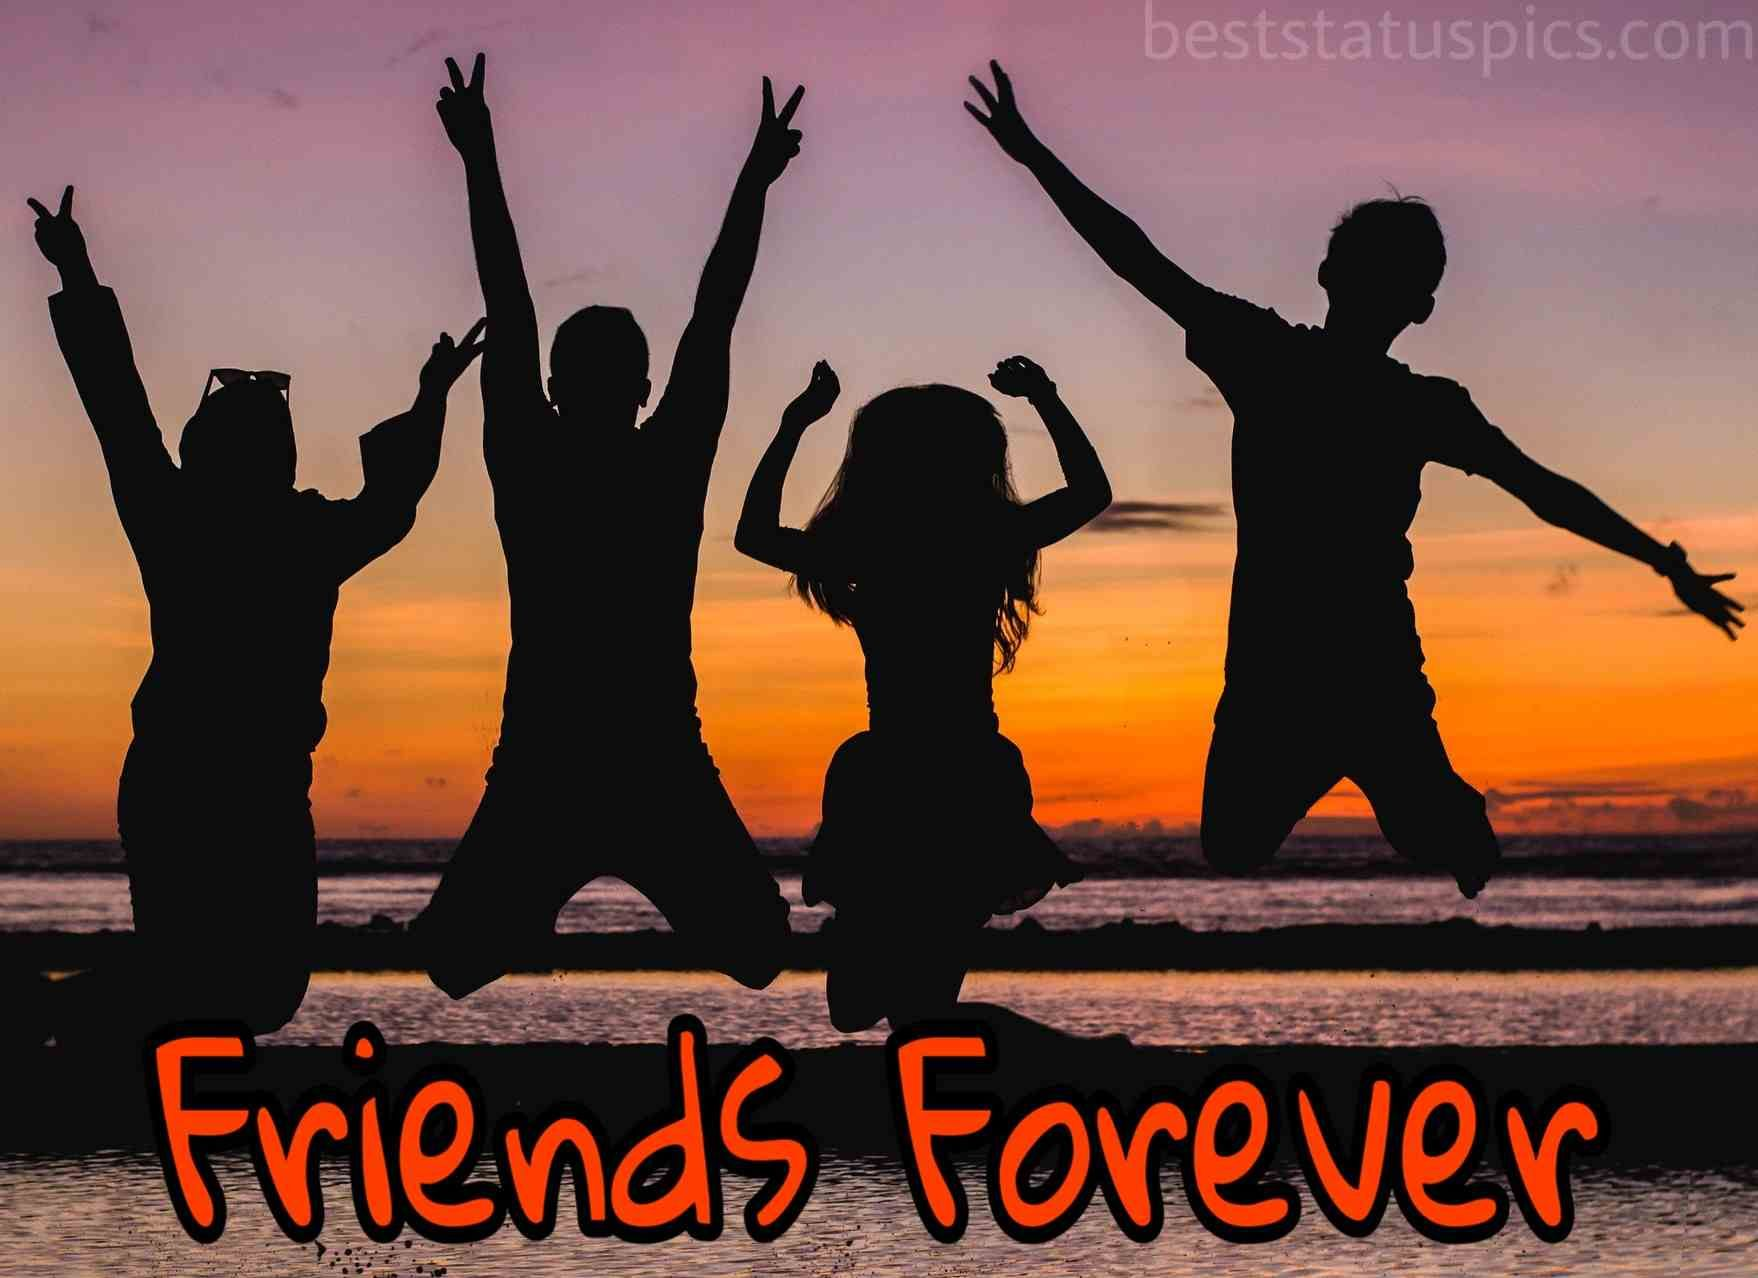 Whatsapp Group Dp For Friends Images In 2020 Whatsapp Dp Images Whatsapp Dp Best Friends Forever Images